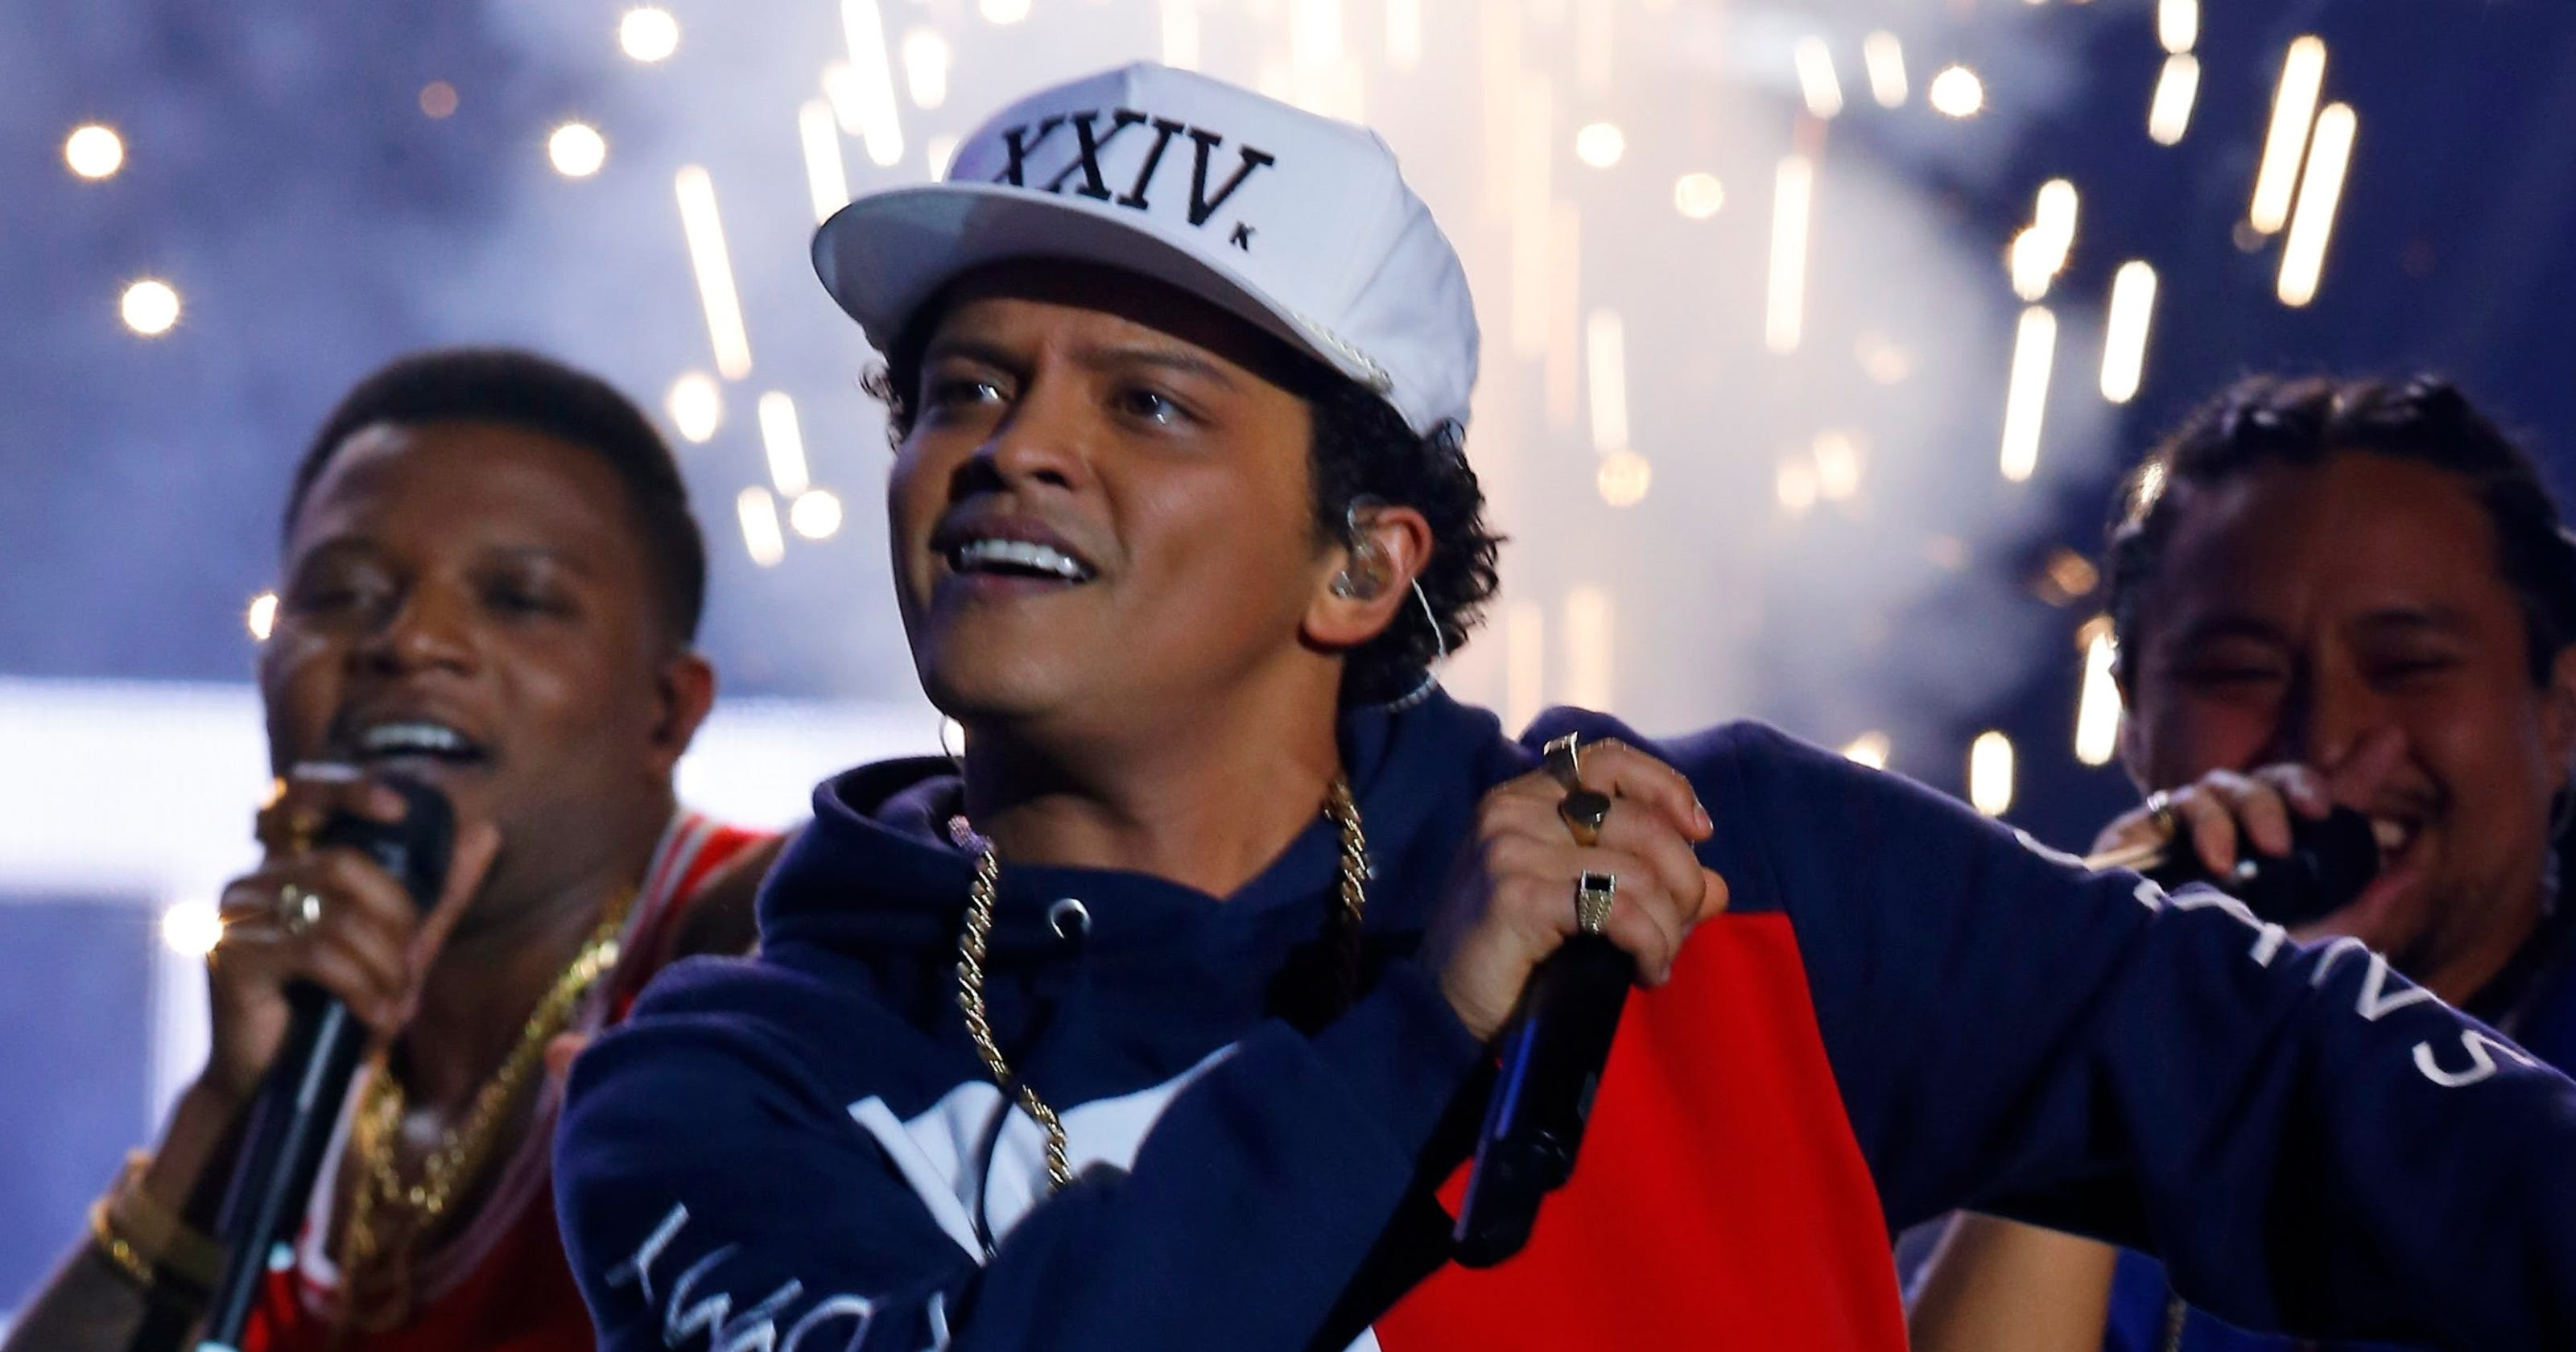 Bruno Mars celebrates new video by dancing outside Indy Waffle House